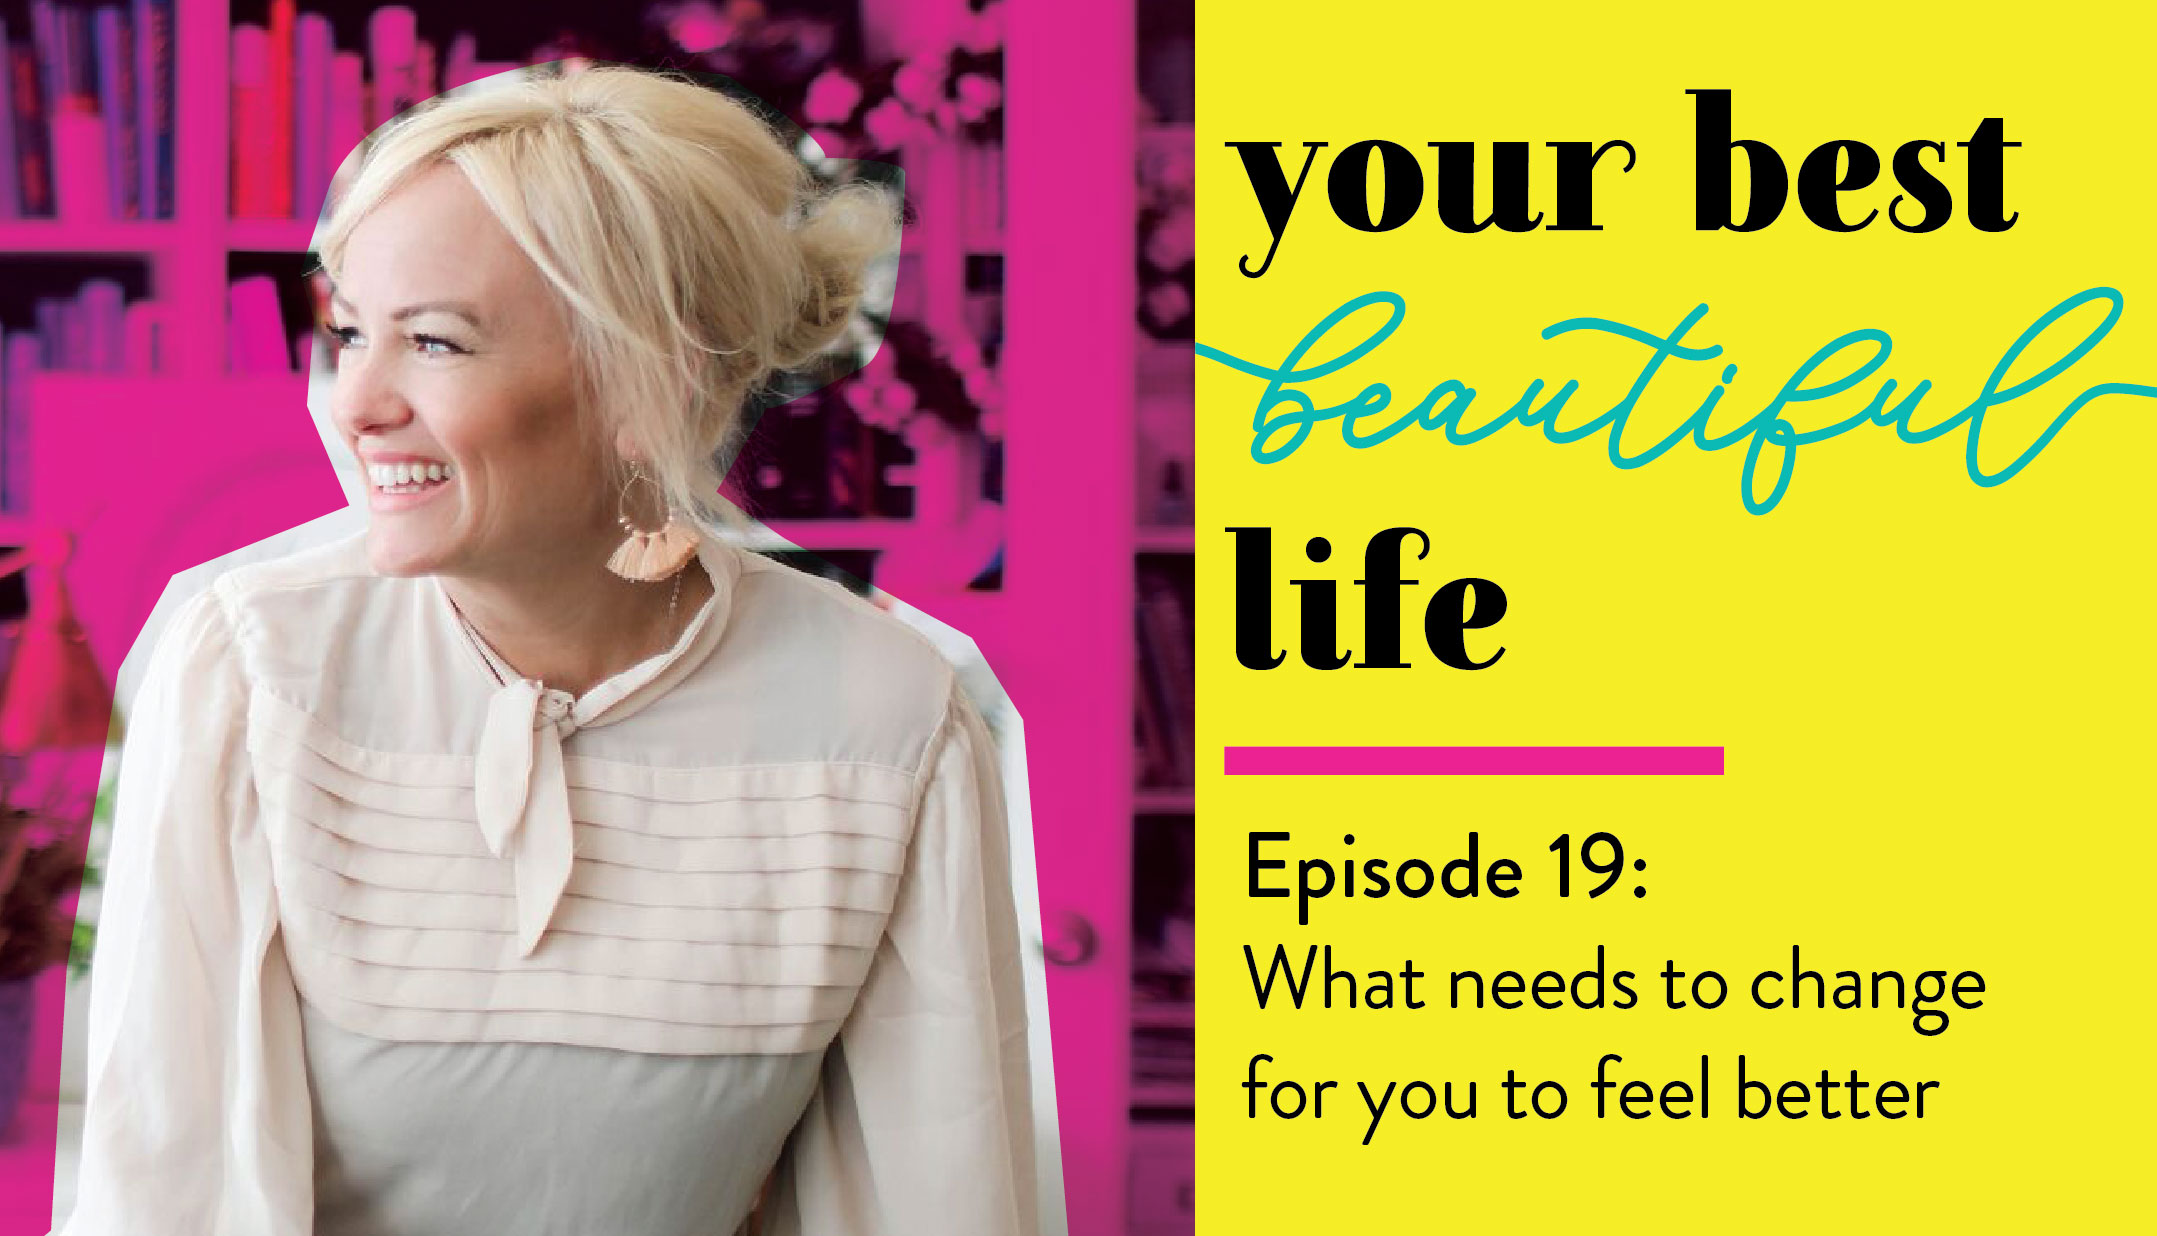 19. What needs to change for you to feel better